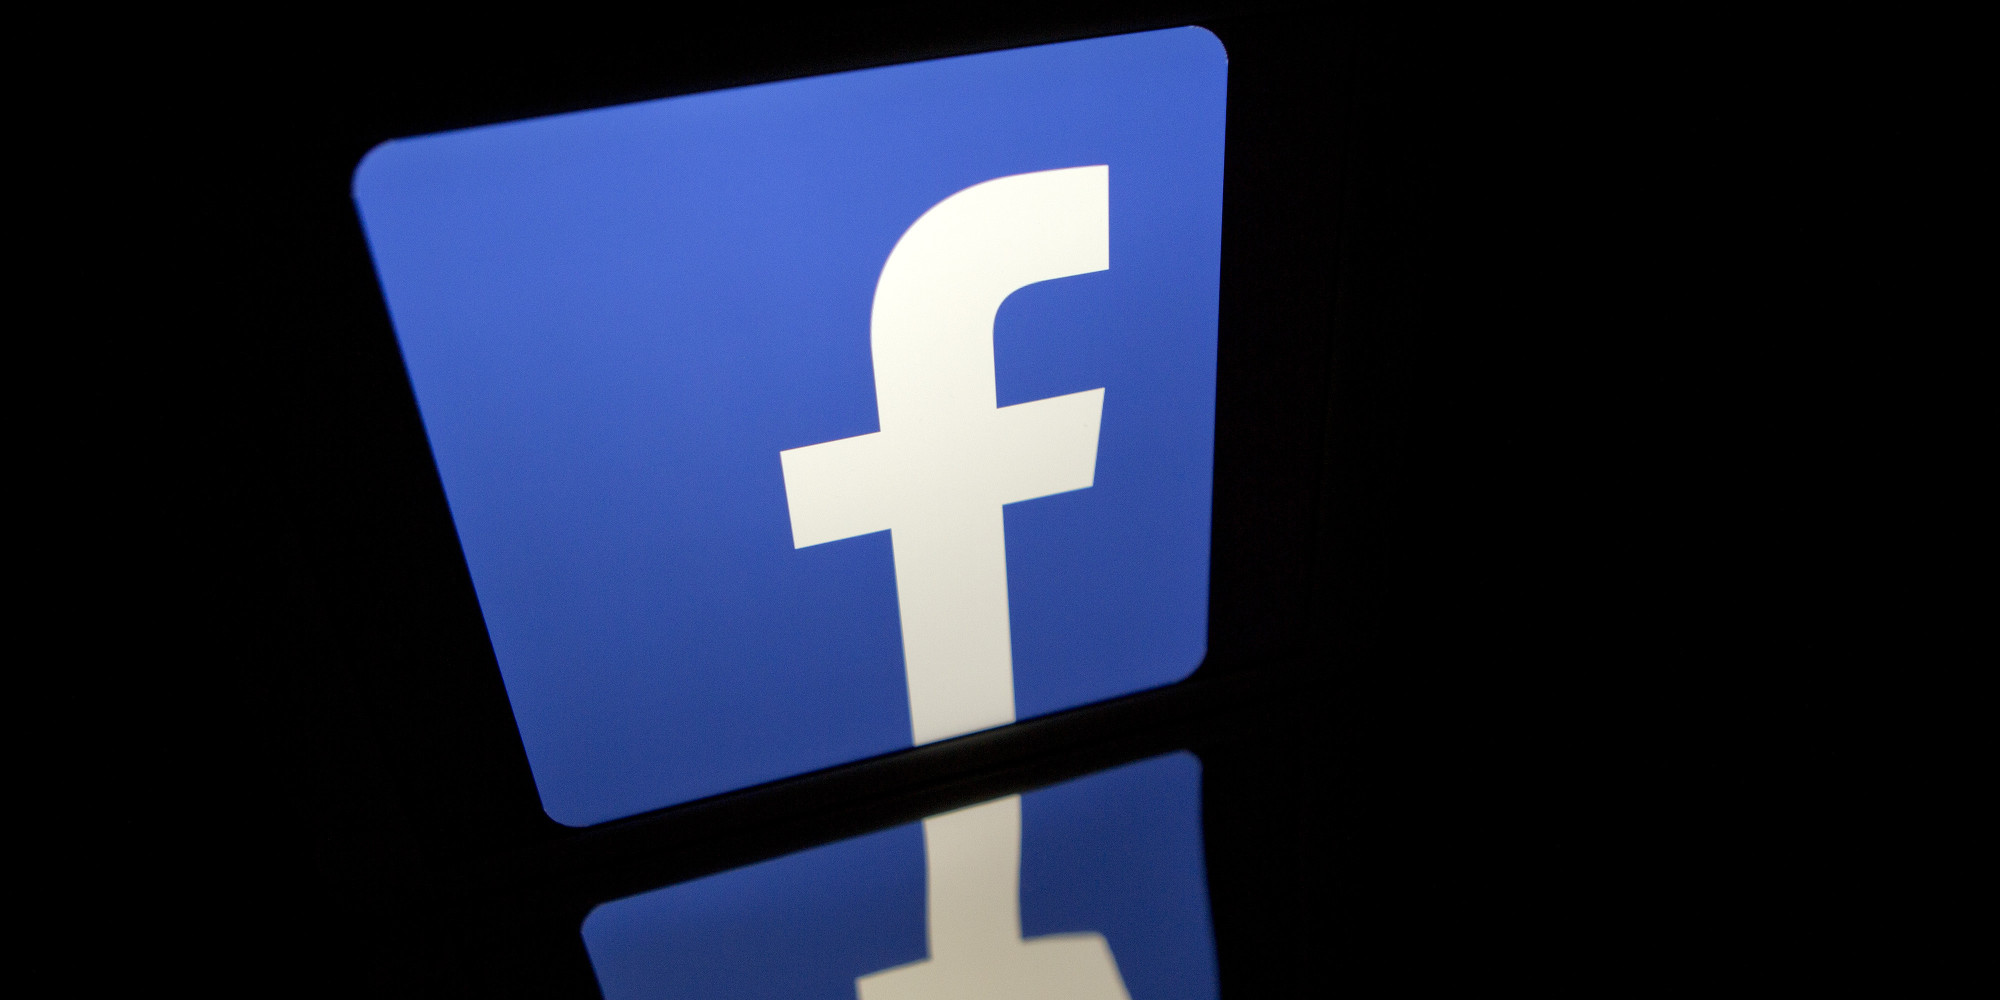 facebook social network service and face Let friends in your social network know  the real face of facebook  i didn't know anything about building a company or global internet service.